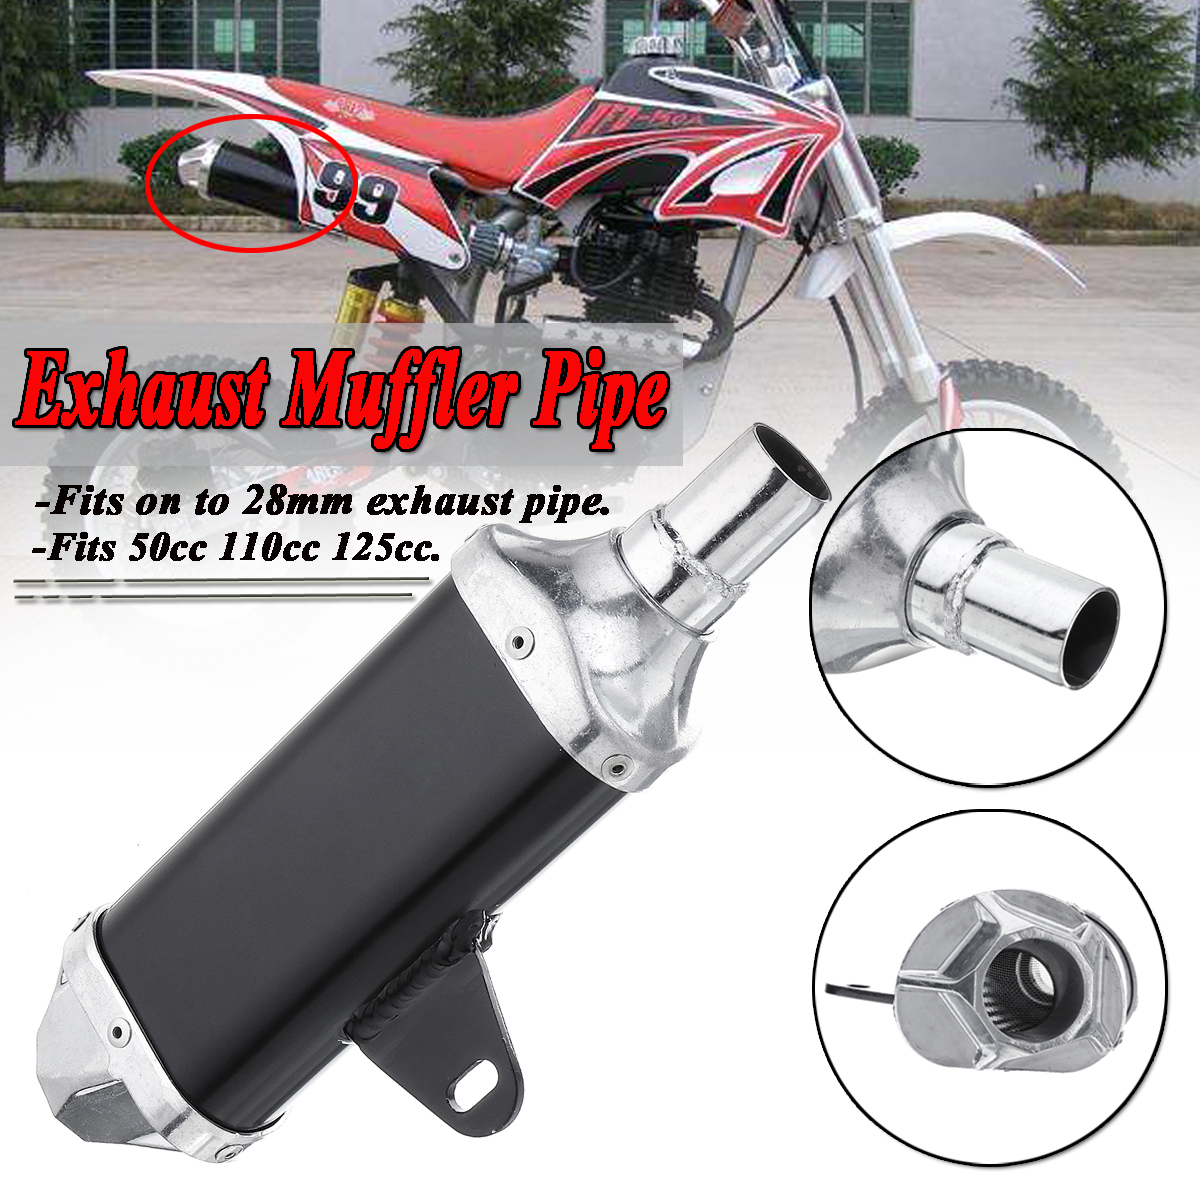 28mm Universal Motorcycle Pit Dirt Bike Exhaust Muffler Pipe 50cc 110cc 125cc New For Honda For Harley For Yamaha For Suzuki